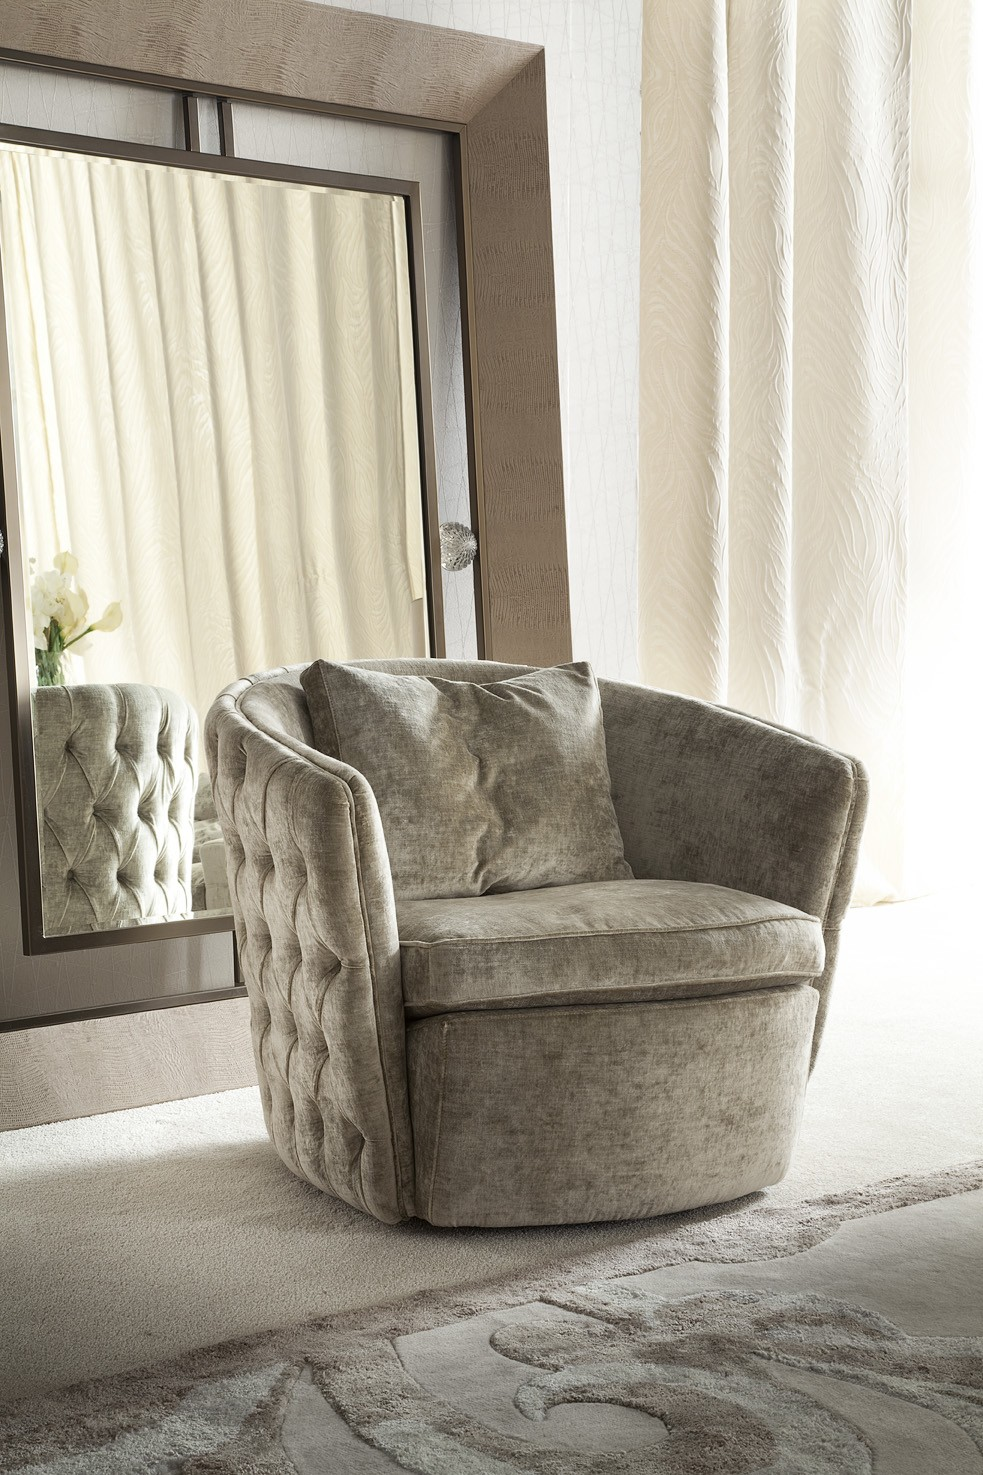 modern living room swivel arm chair los angeles - Swivel Arm Chairs Living Room